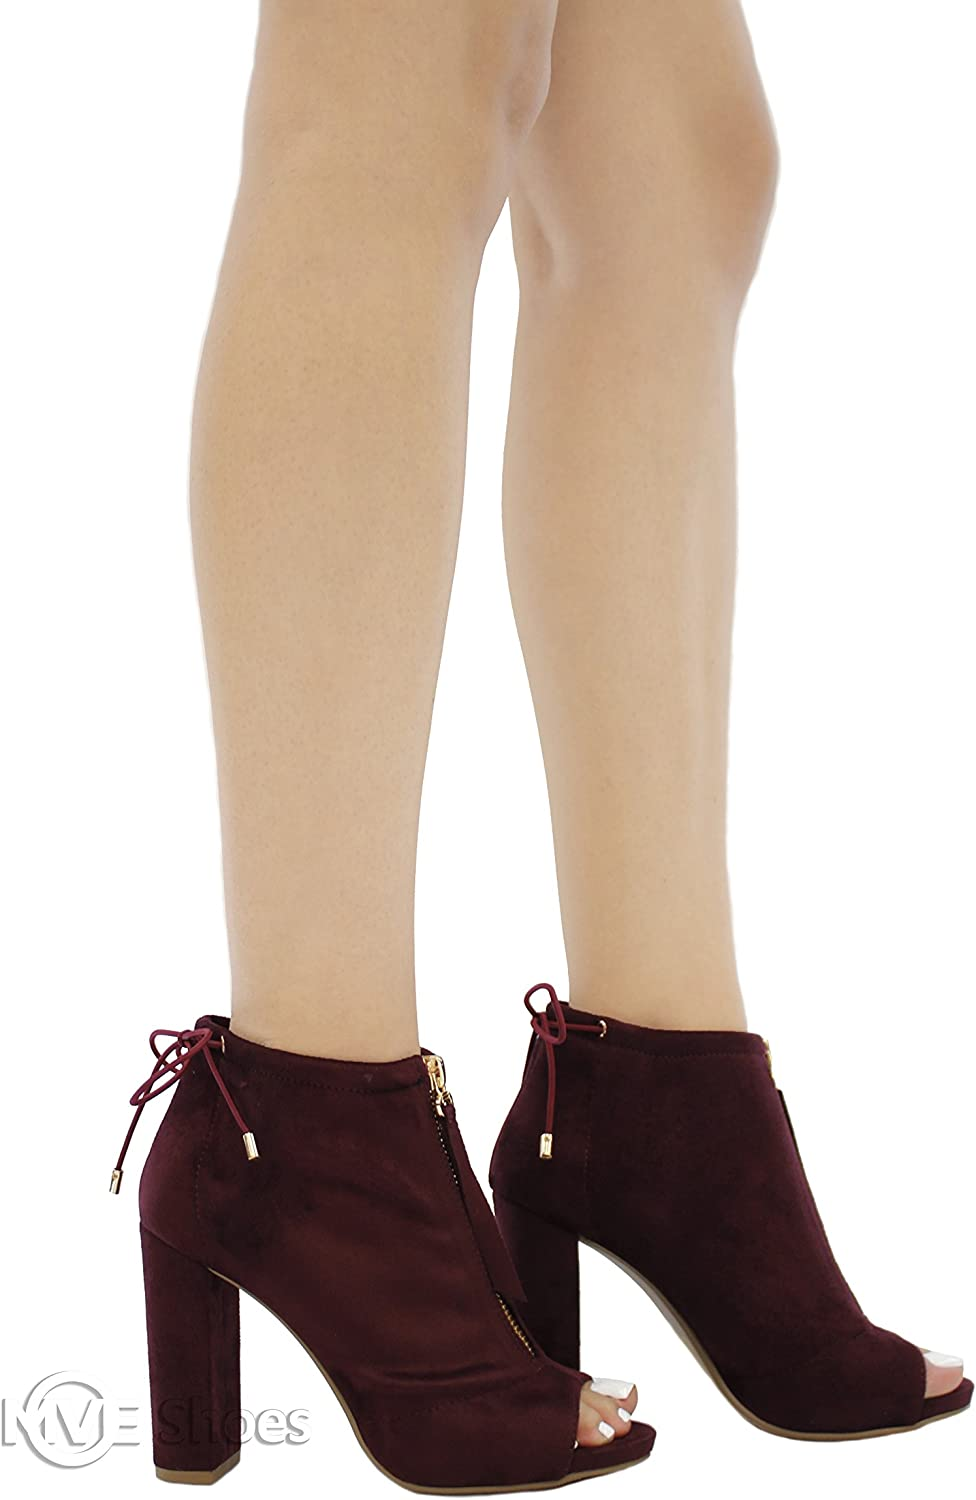 MVE shoes Womens Open Toe Ankle Bootie Front Zip Chunky Heel Nice Boots